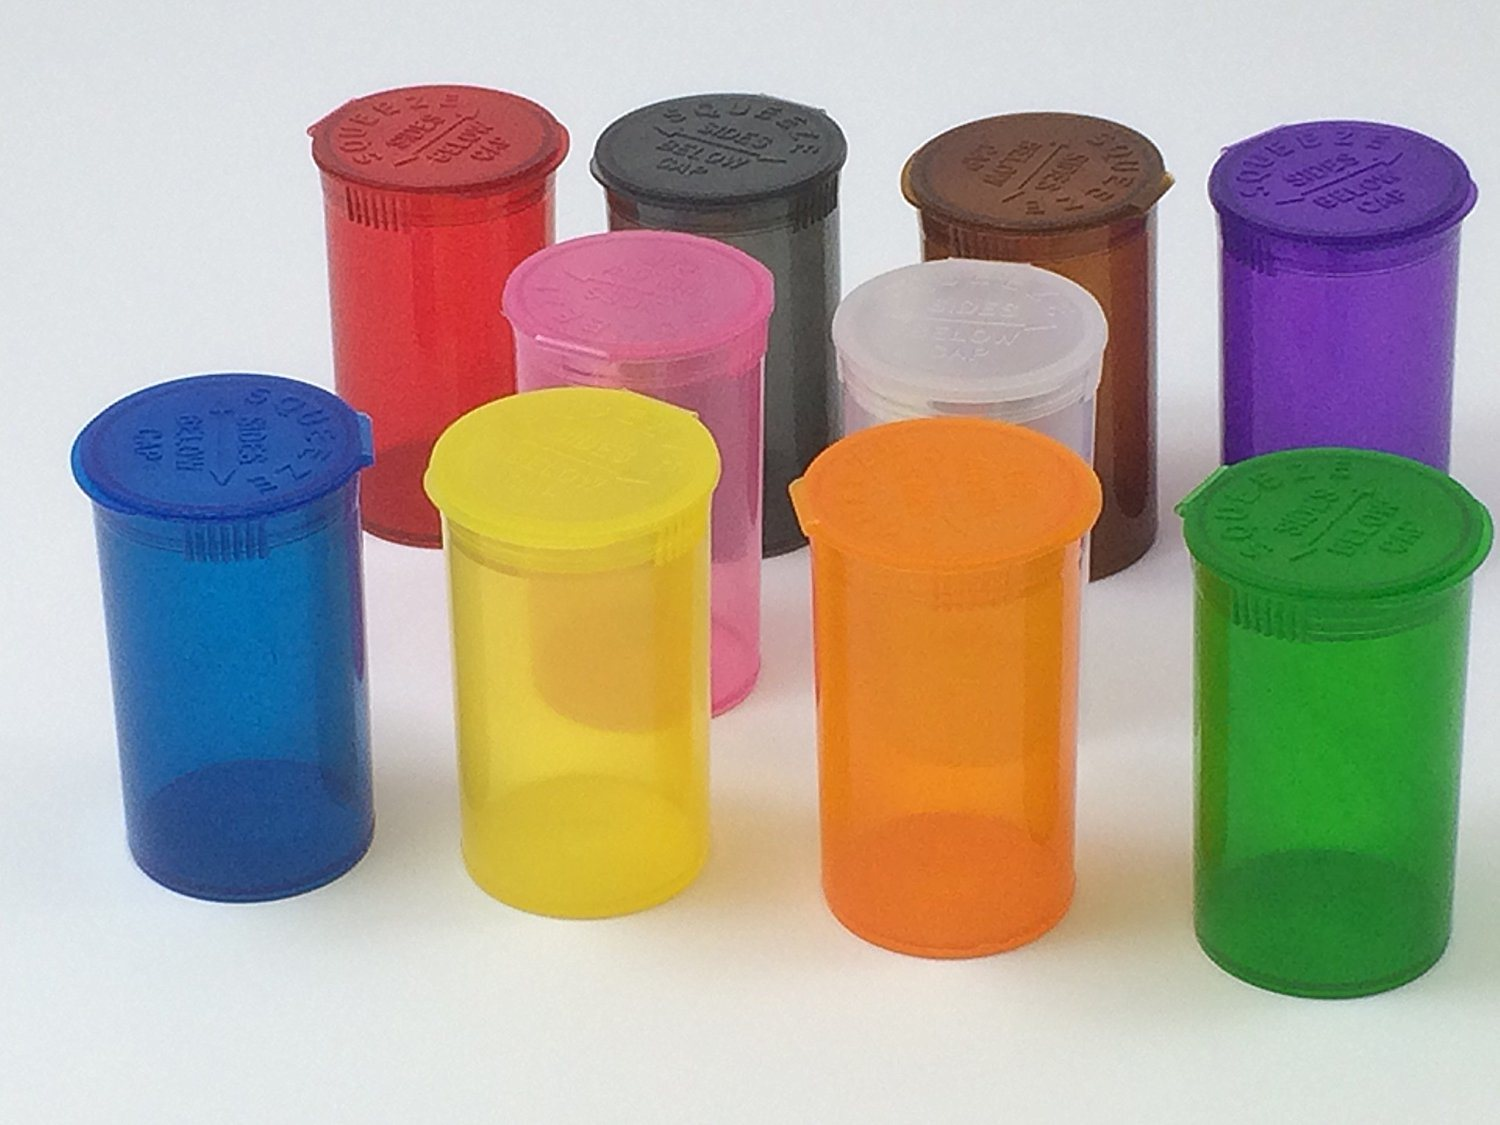 13 DRAM Pop Top Vial Squeezies Squeeze-Top Pill Bottles Rx Pill Bottles Prescription Crafts Coins Storage Medicine Containers 10 Assorted Colors You Pick